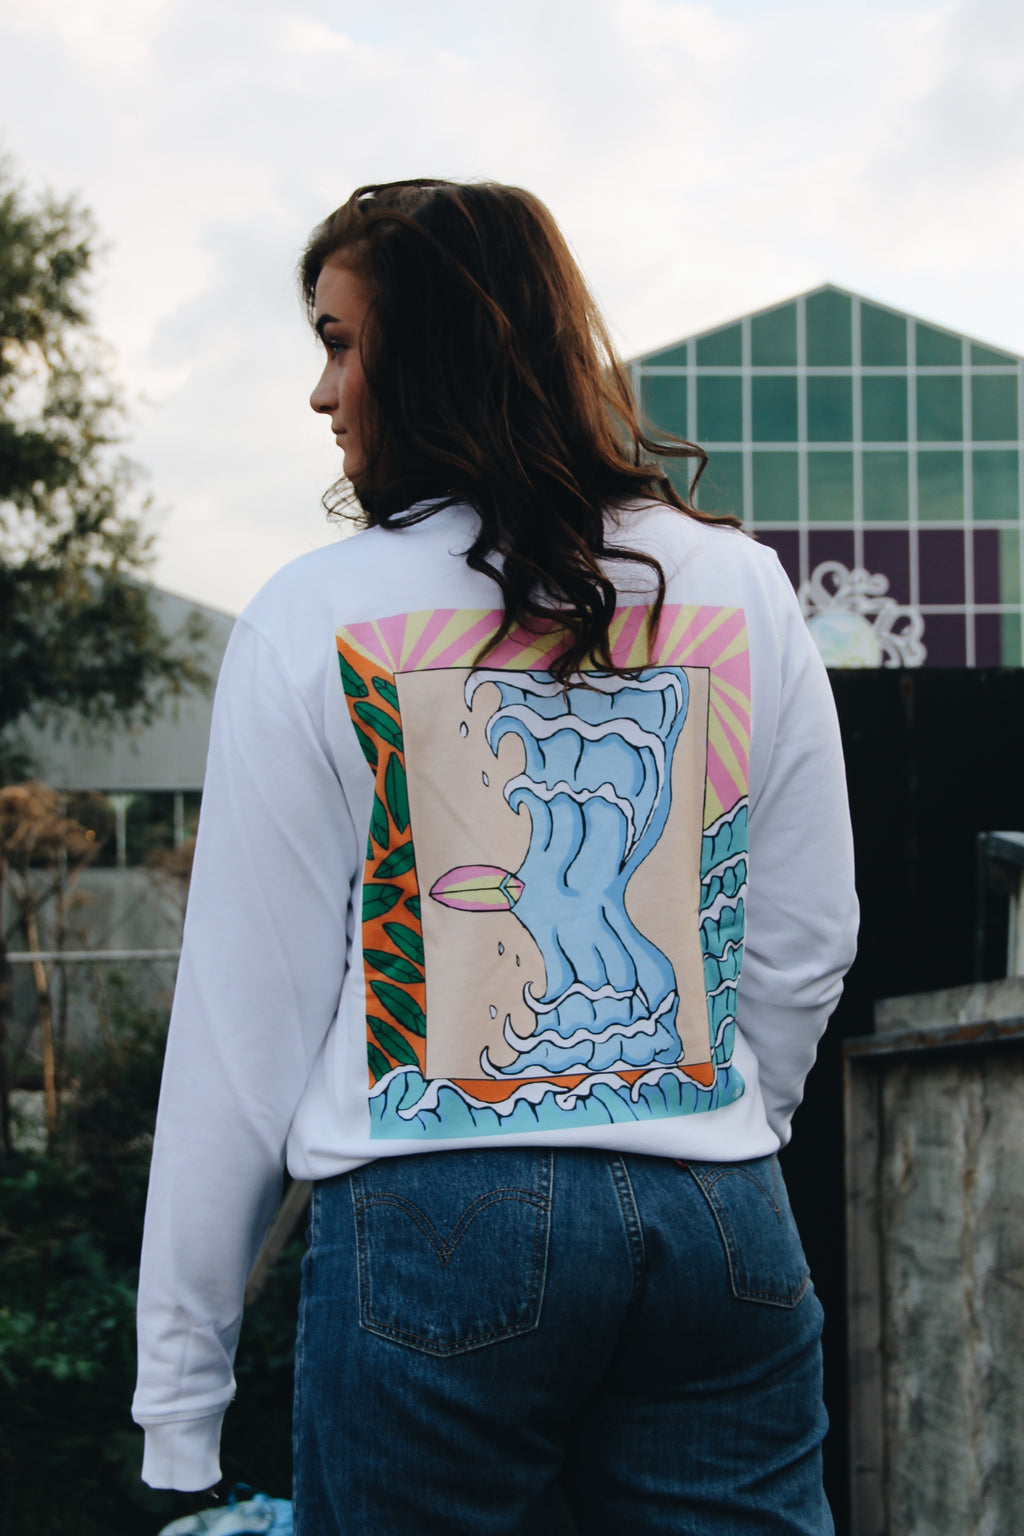 JNGL Clothing - Surflife Sweater // White - Back (on model)